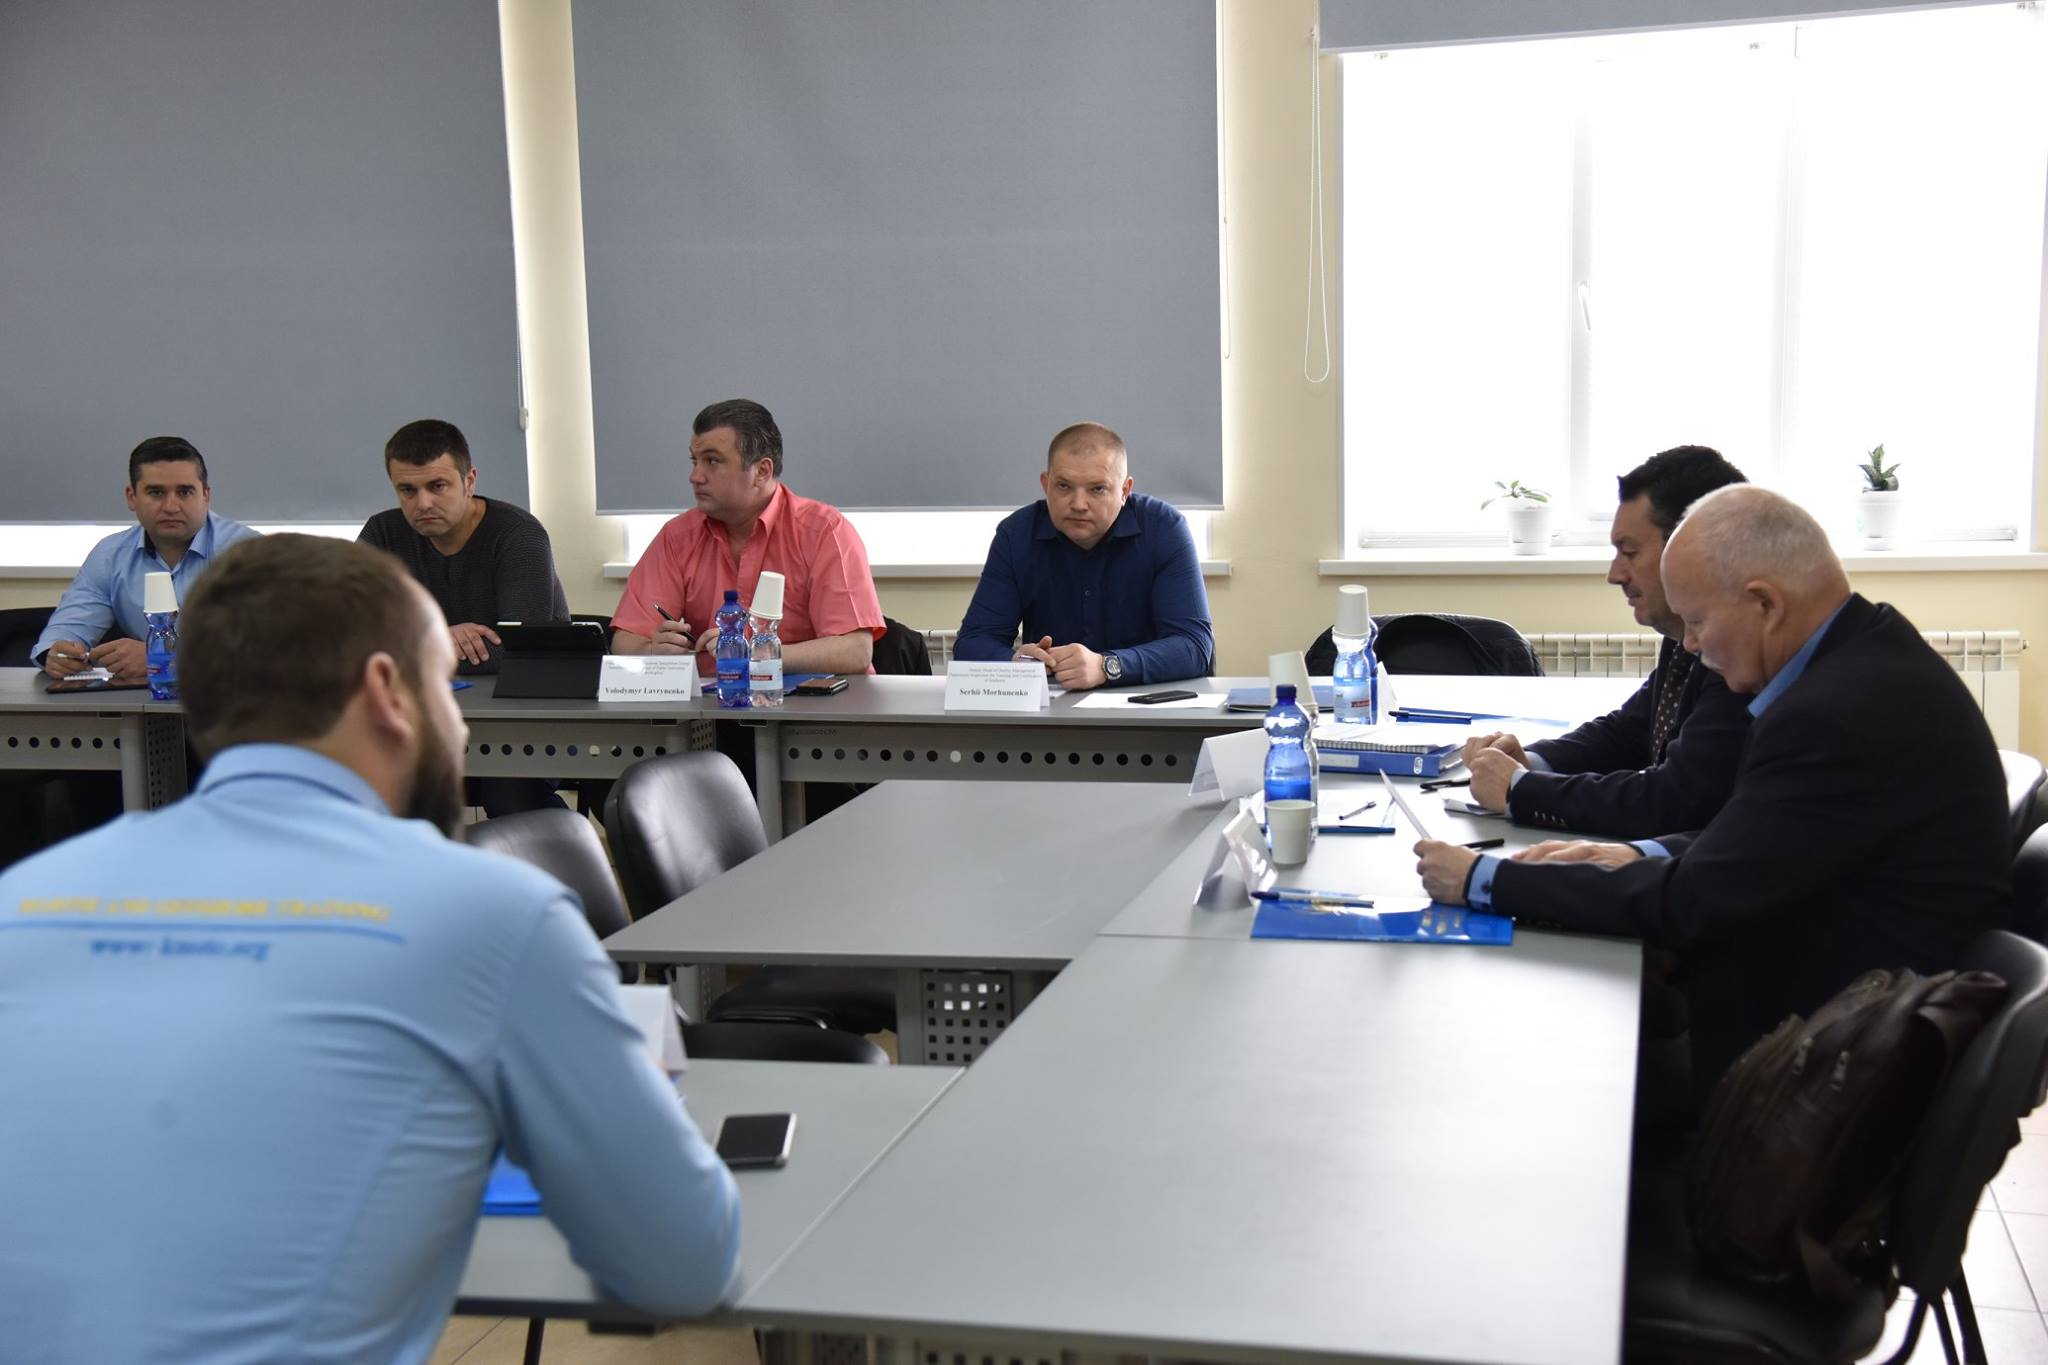 Trainings in Kherson and region: a selection of sites